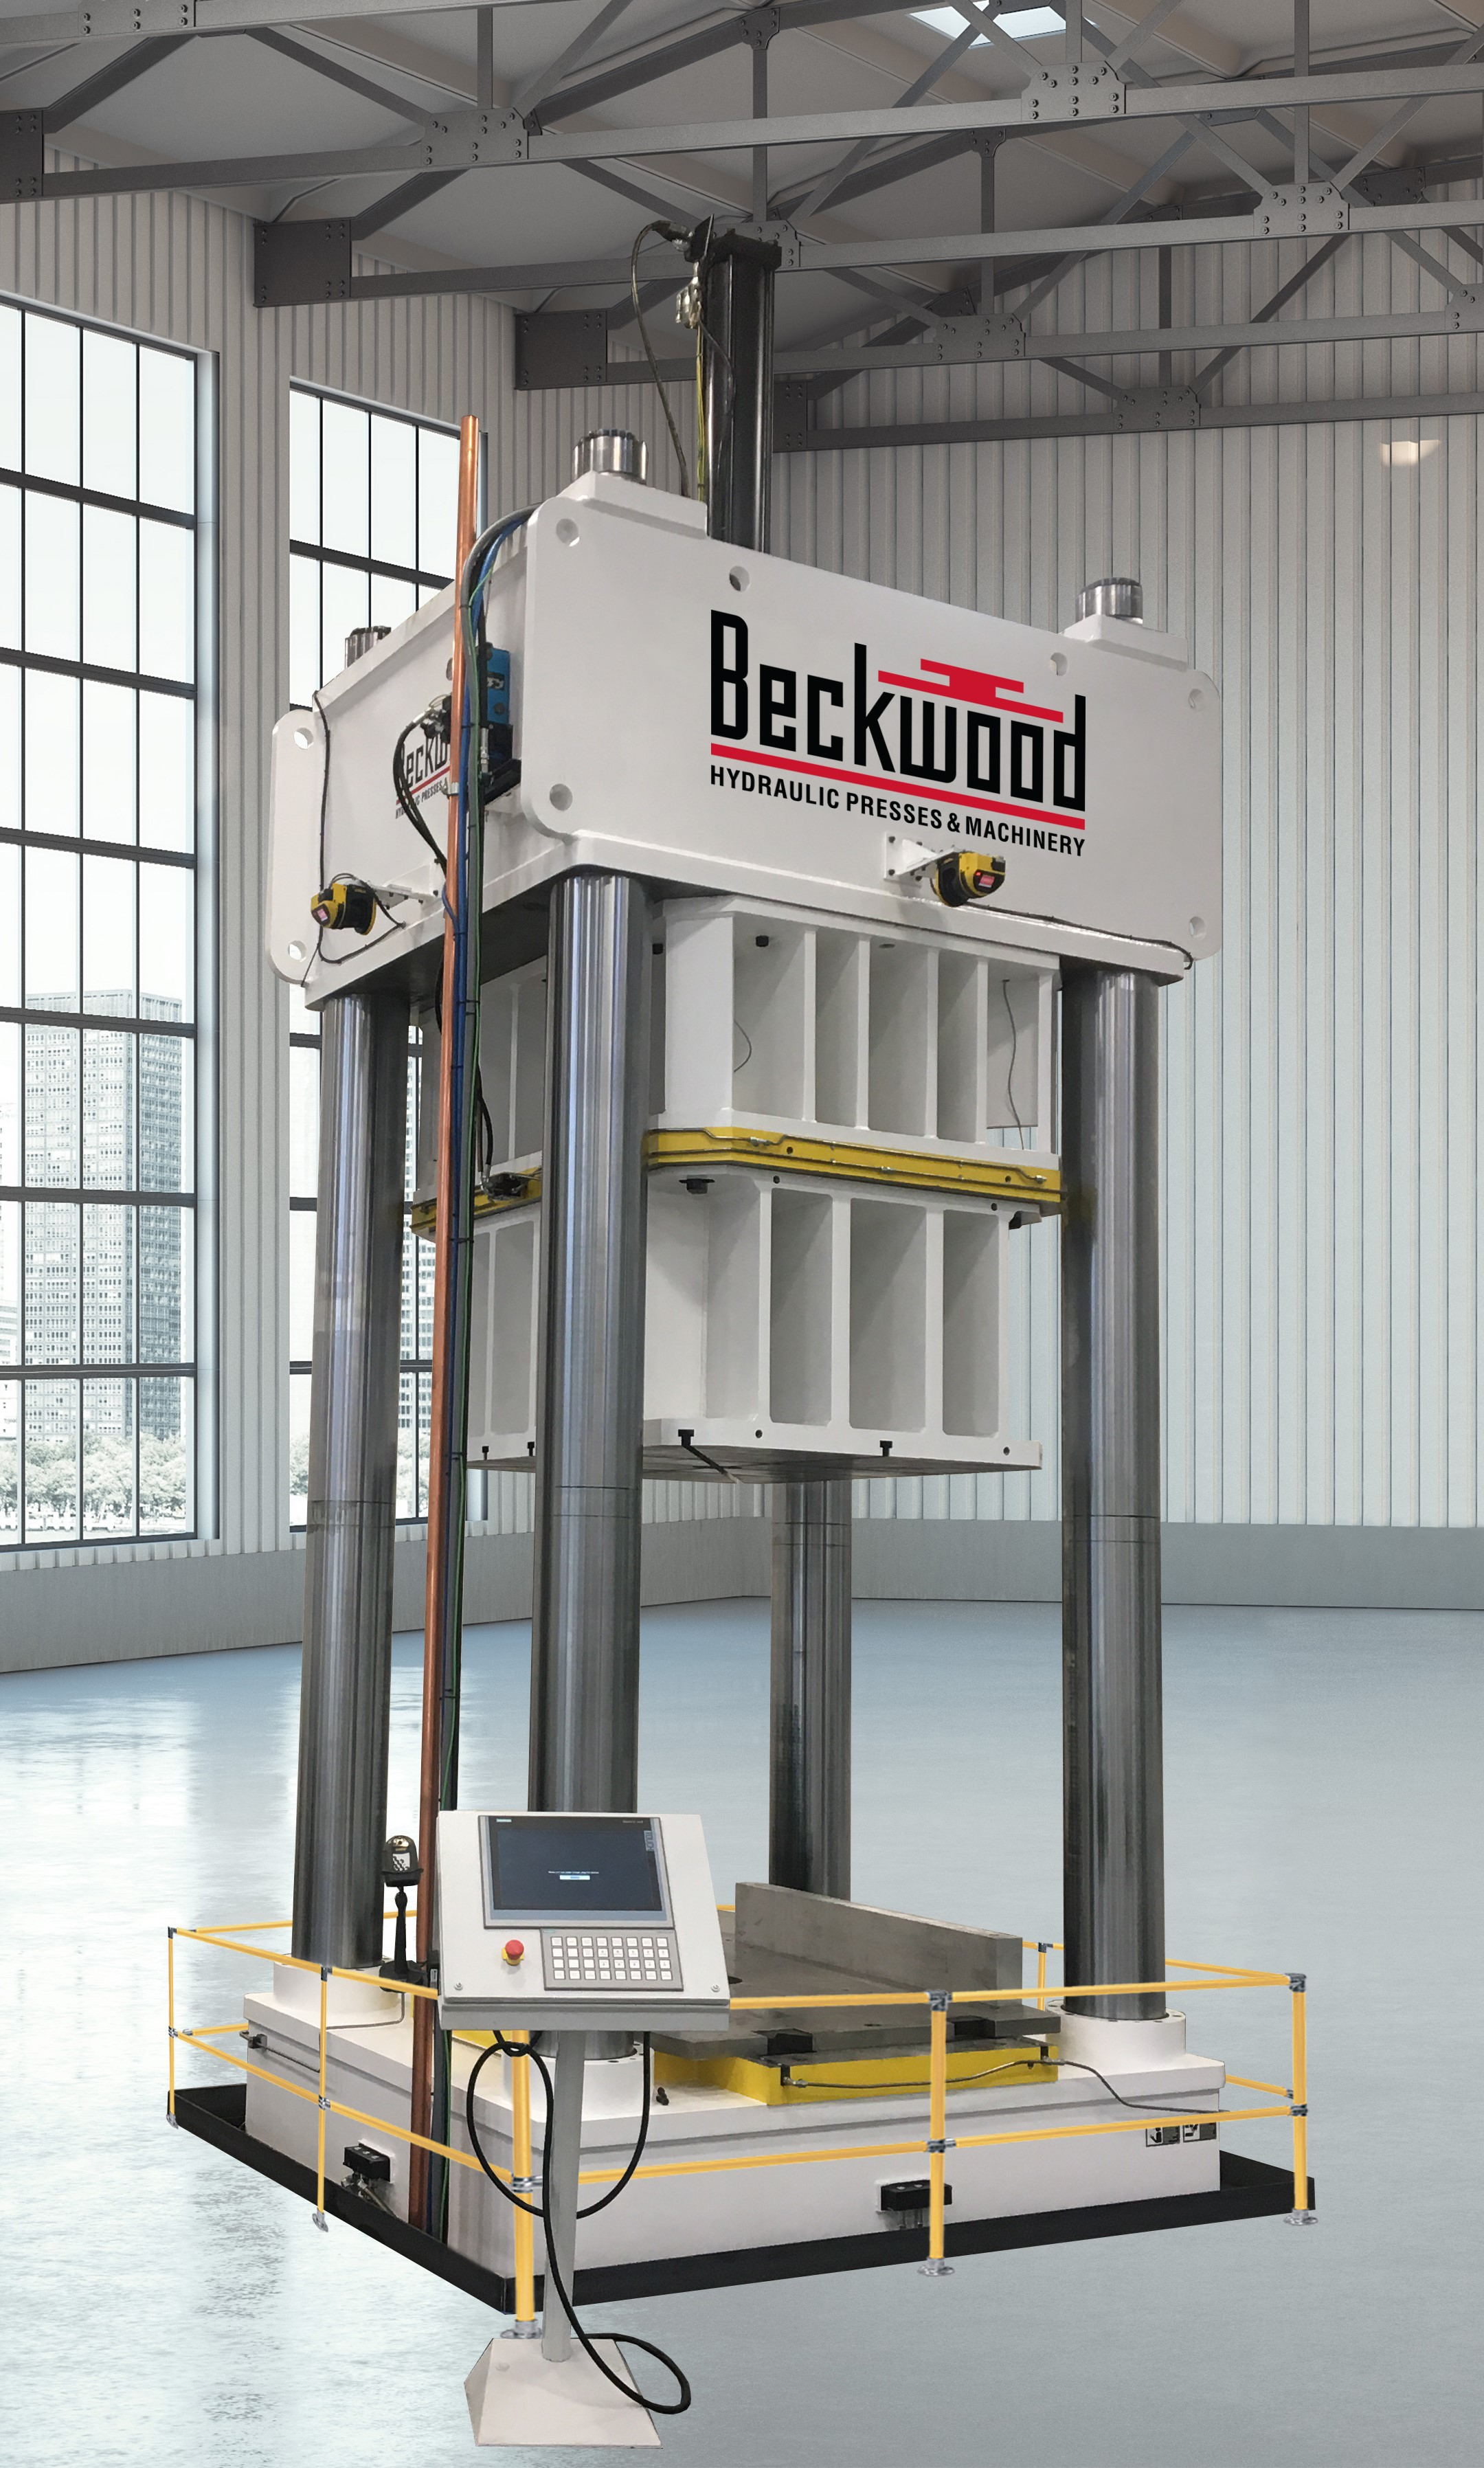 It Is Rocket Science A Workcell For Forming Aircraft Components Parts On Each Of The 1400 Lb Hydraulic Presses Used In Quick Die Change Qdc Assembly Are Four Post Frame Styles With Replaceable Graphite Impregnated Bronze